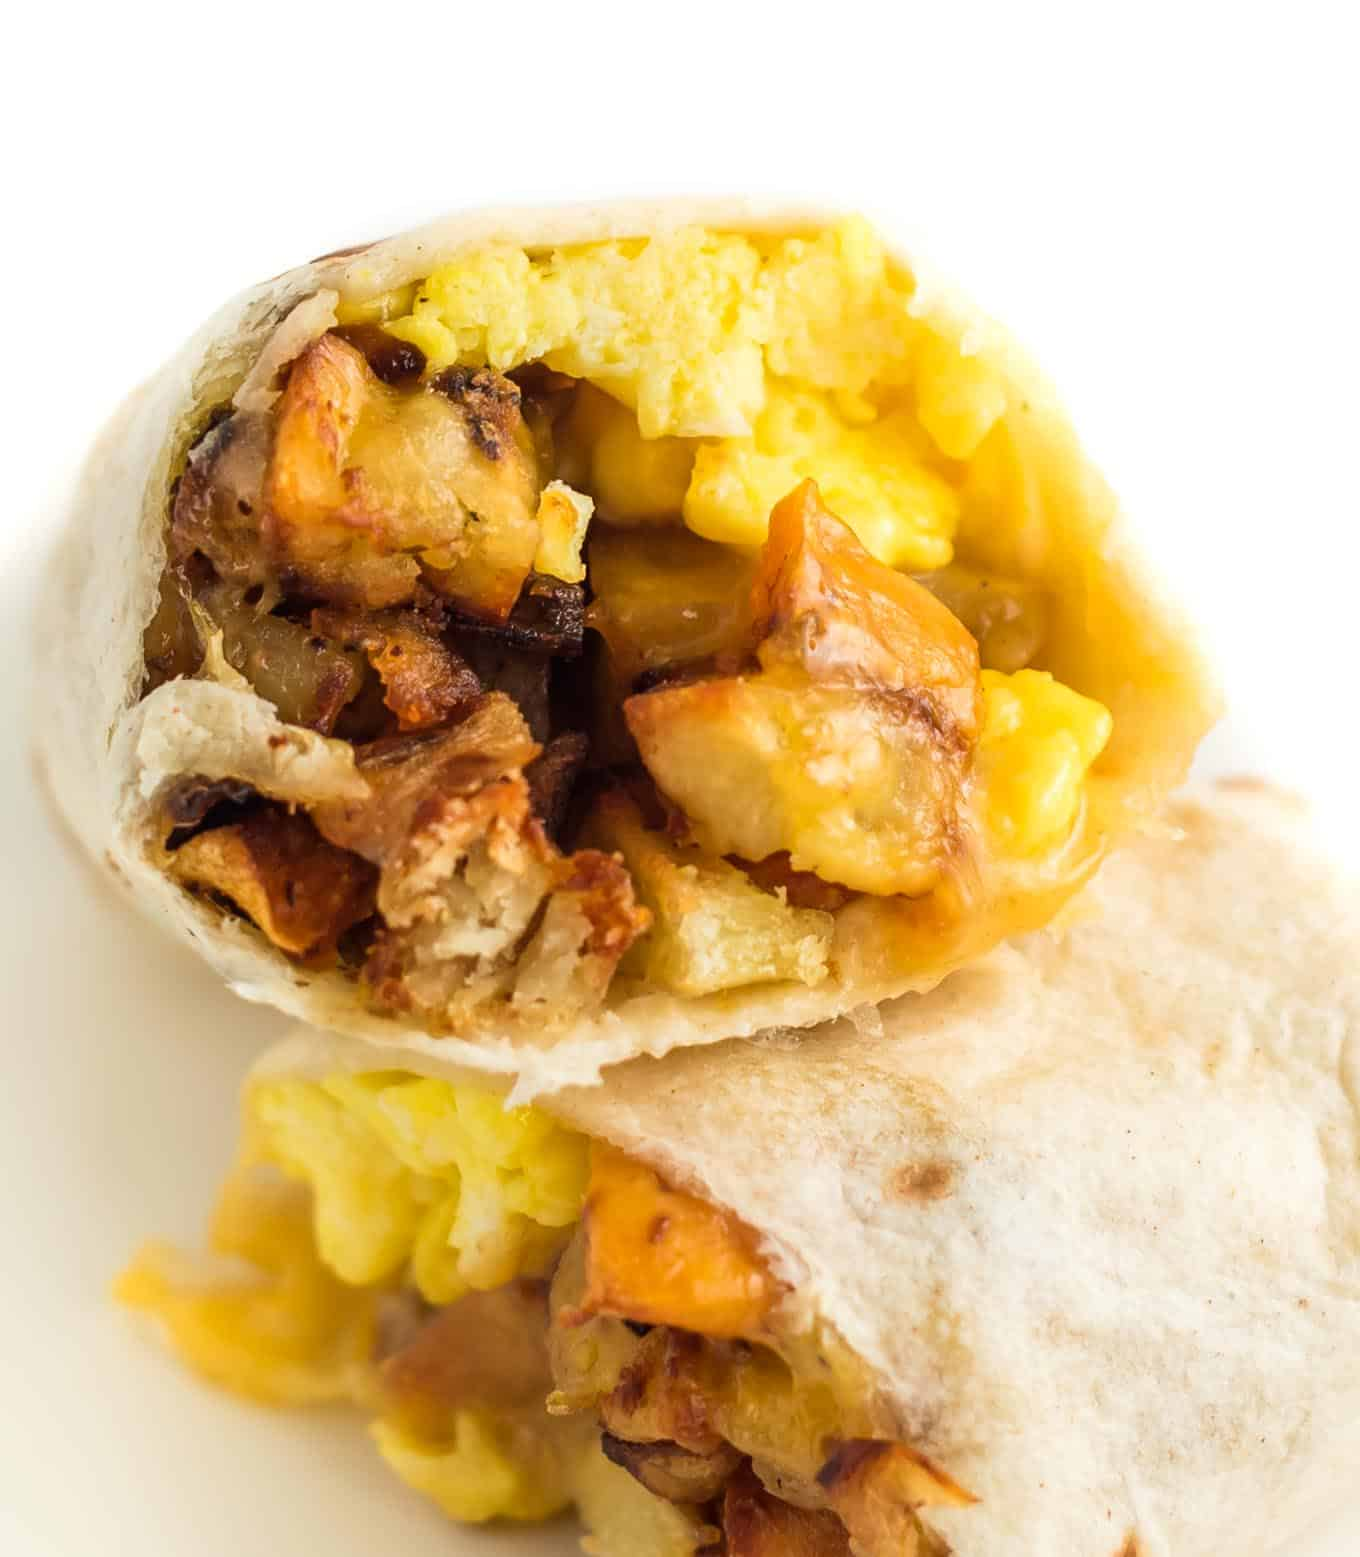 breakfast burrito stuffed with scrambled eggs and hash